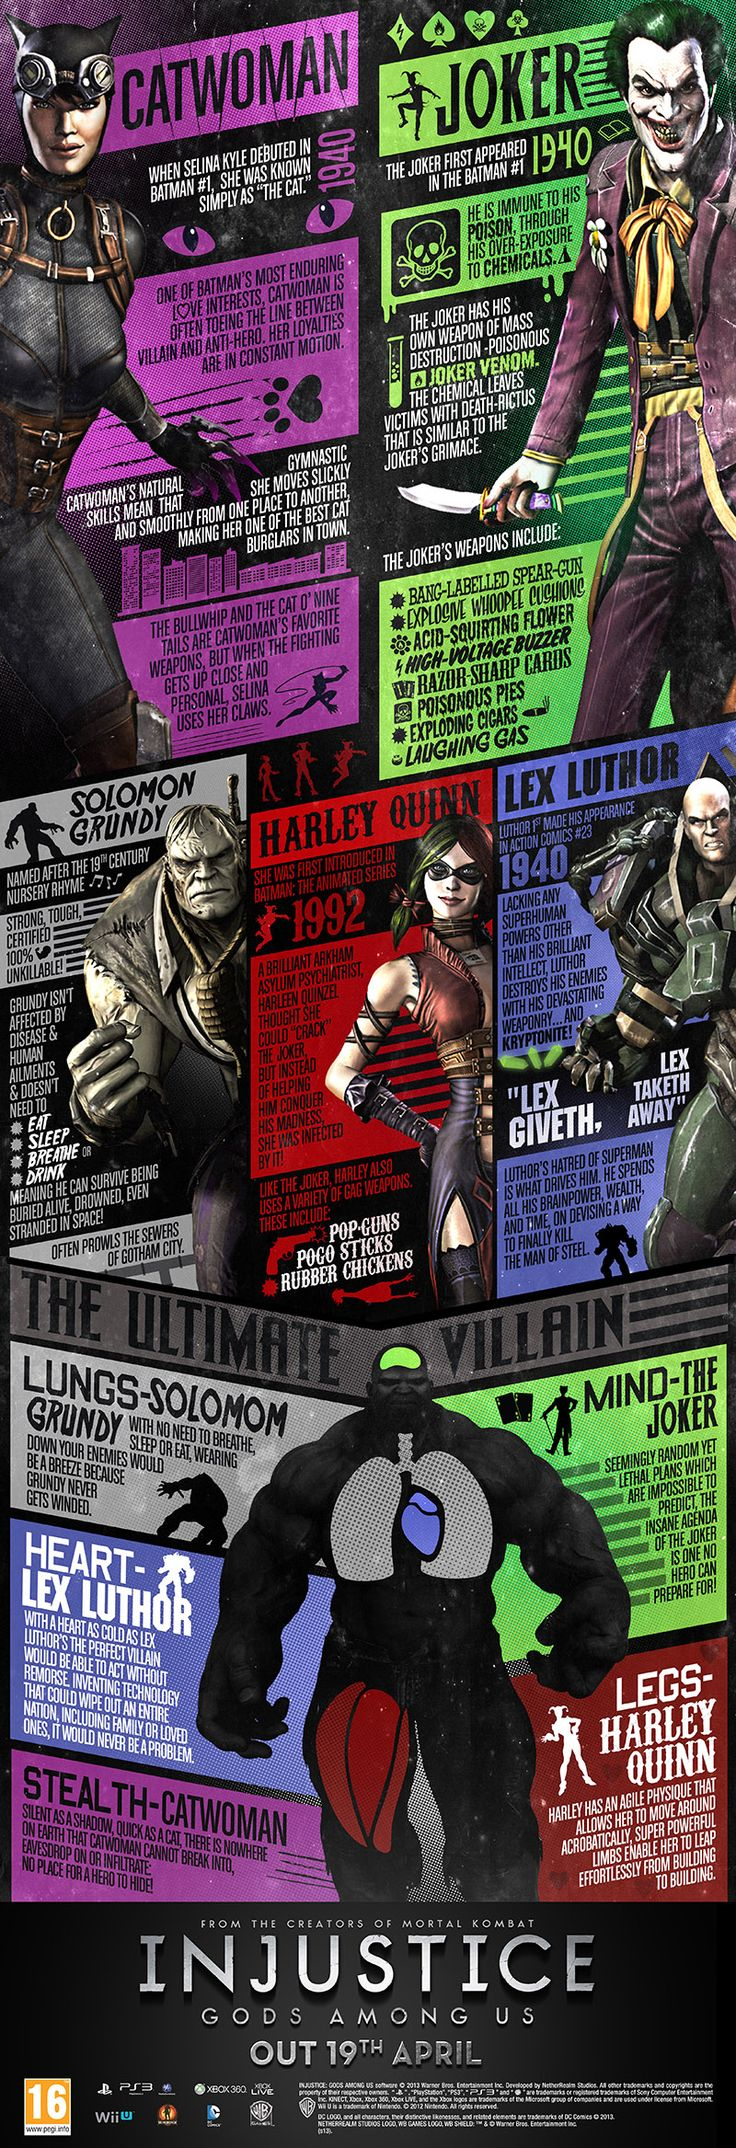 To celebrate the release of Injustice: Gods Among Us on April 17th, Warner Bros Interactive Entertainment has commissioned these cool infographics for both newcomers to DC Comics and die-hard fans alike.